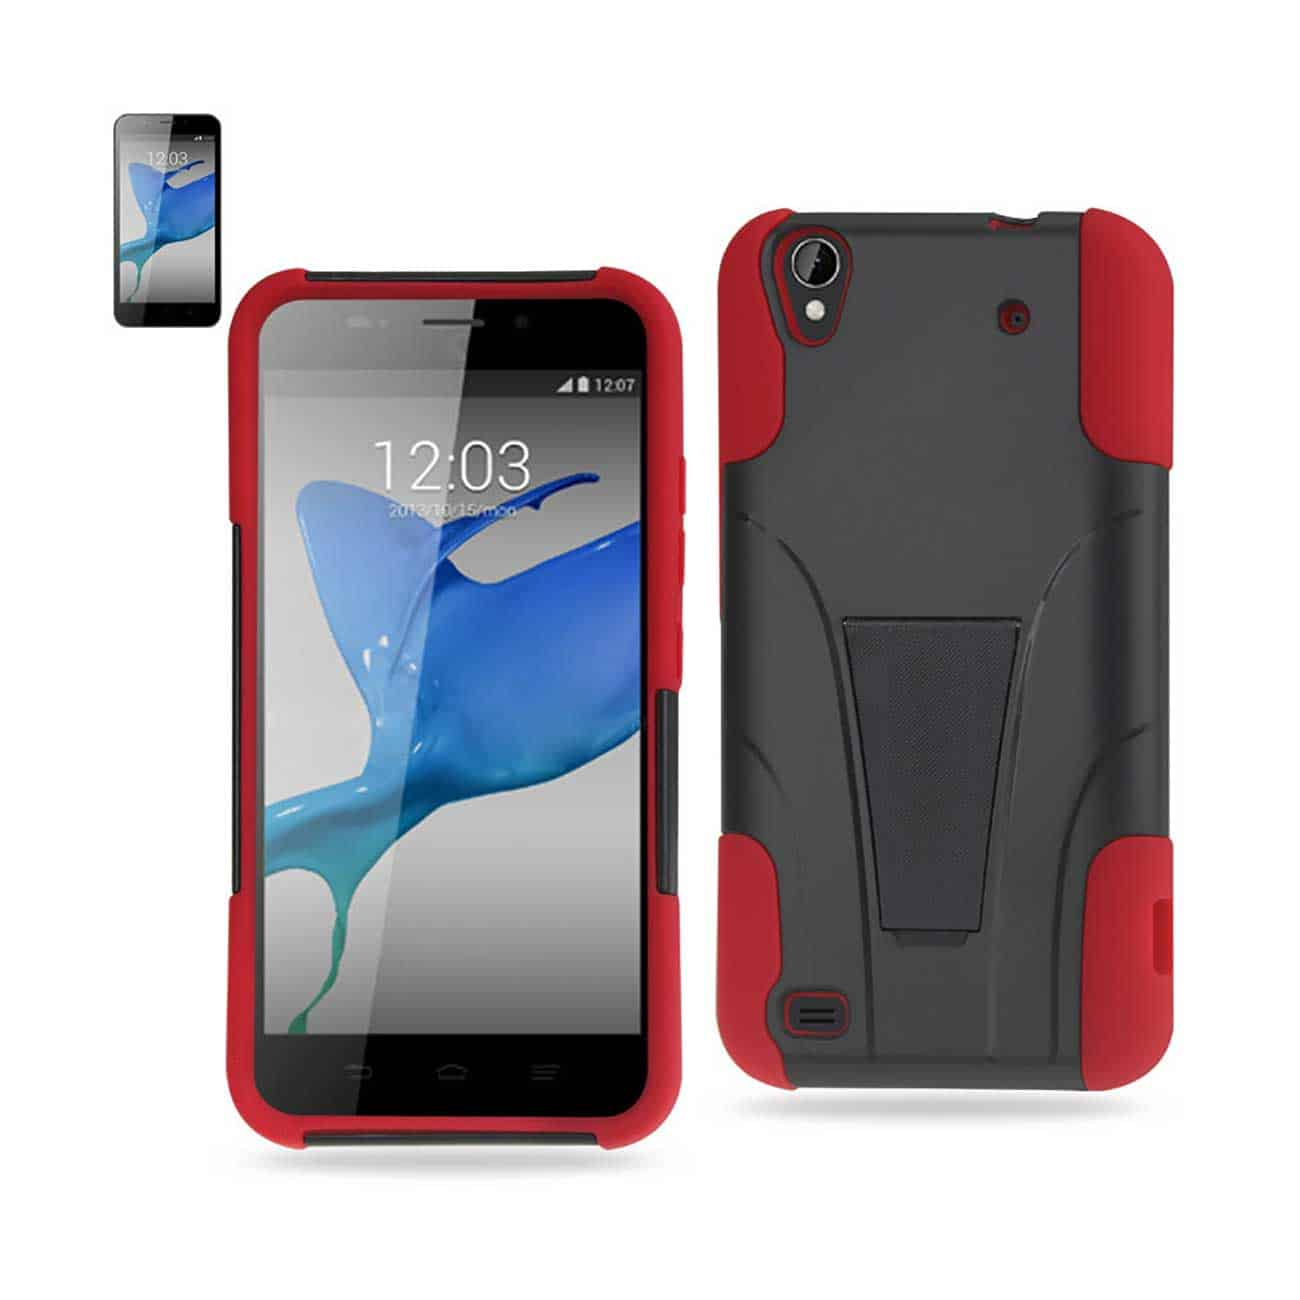 ZTE QUARTZ HYBRID HEAVY DUTY CASE WITH KICKSTAND IN RED BLACK